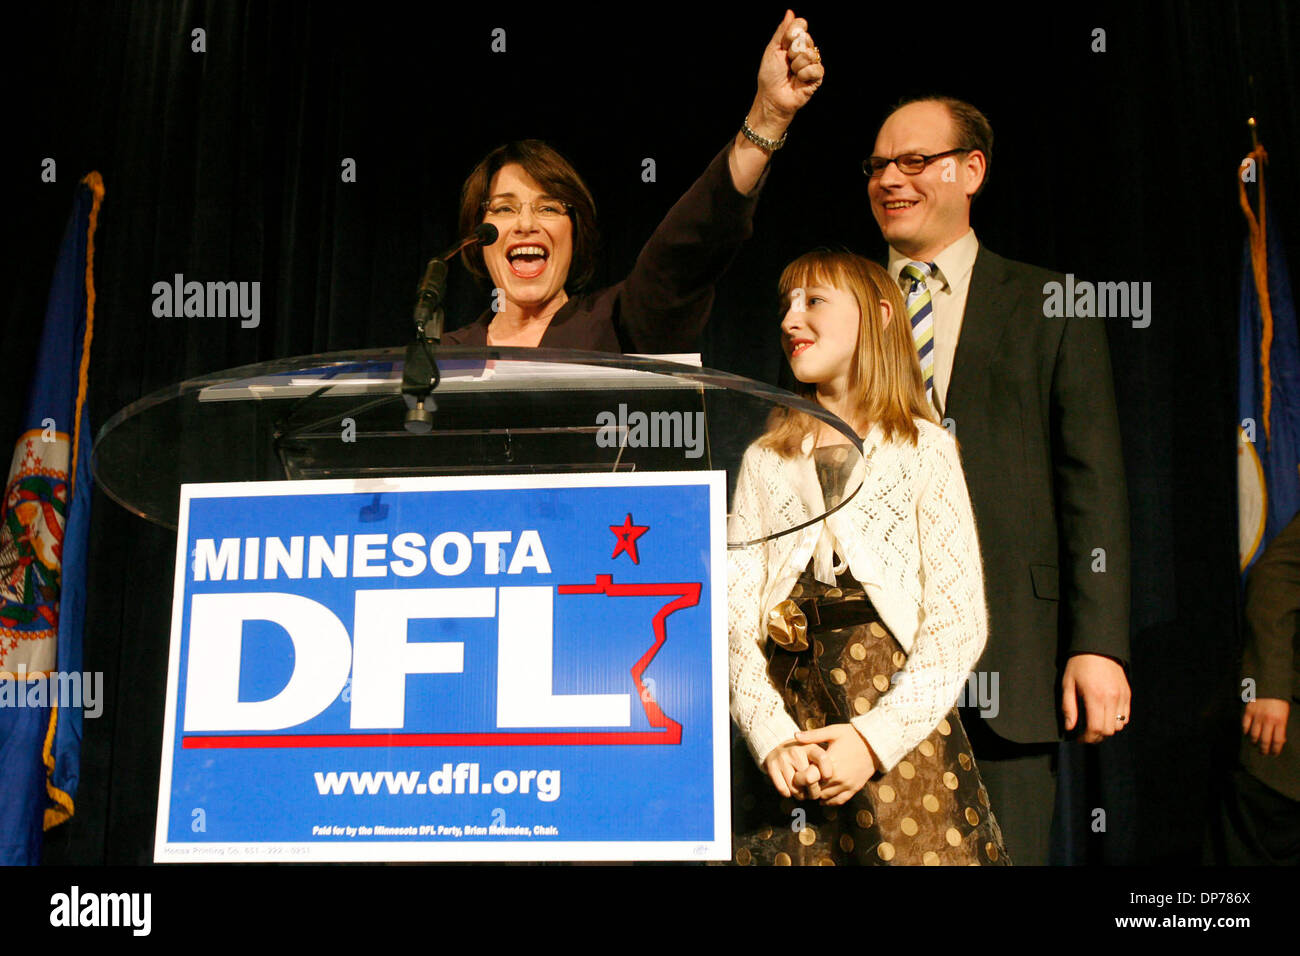 Nov 07, 2006; St. Paul, MN, USA; DFL Election Night: Amy Klobuchar raised her hand in the air as she gave a victory speech at the Crowne Plaza in St. Paul after winning the U.S. Senate race against Mark Kennedy. Beside her is her daughter and husband. Mandatory Credit: Photo by Renee Jones Schneider/Minneapolis Star Tribune/ZUMA Press. (©) Copyright 2006 by Minneapolis Star Tribune - Stock Image